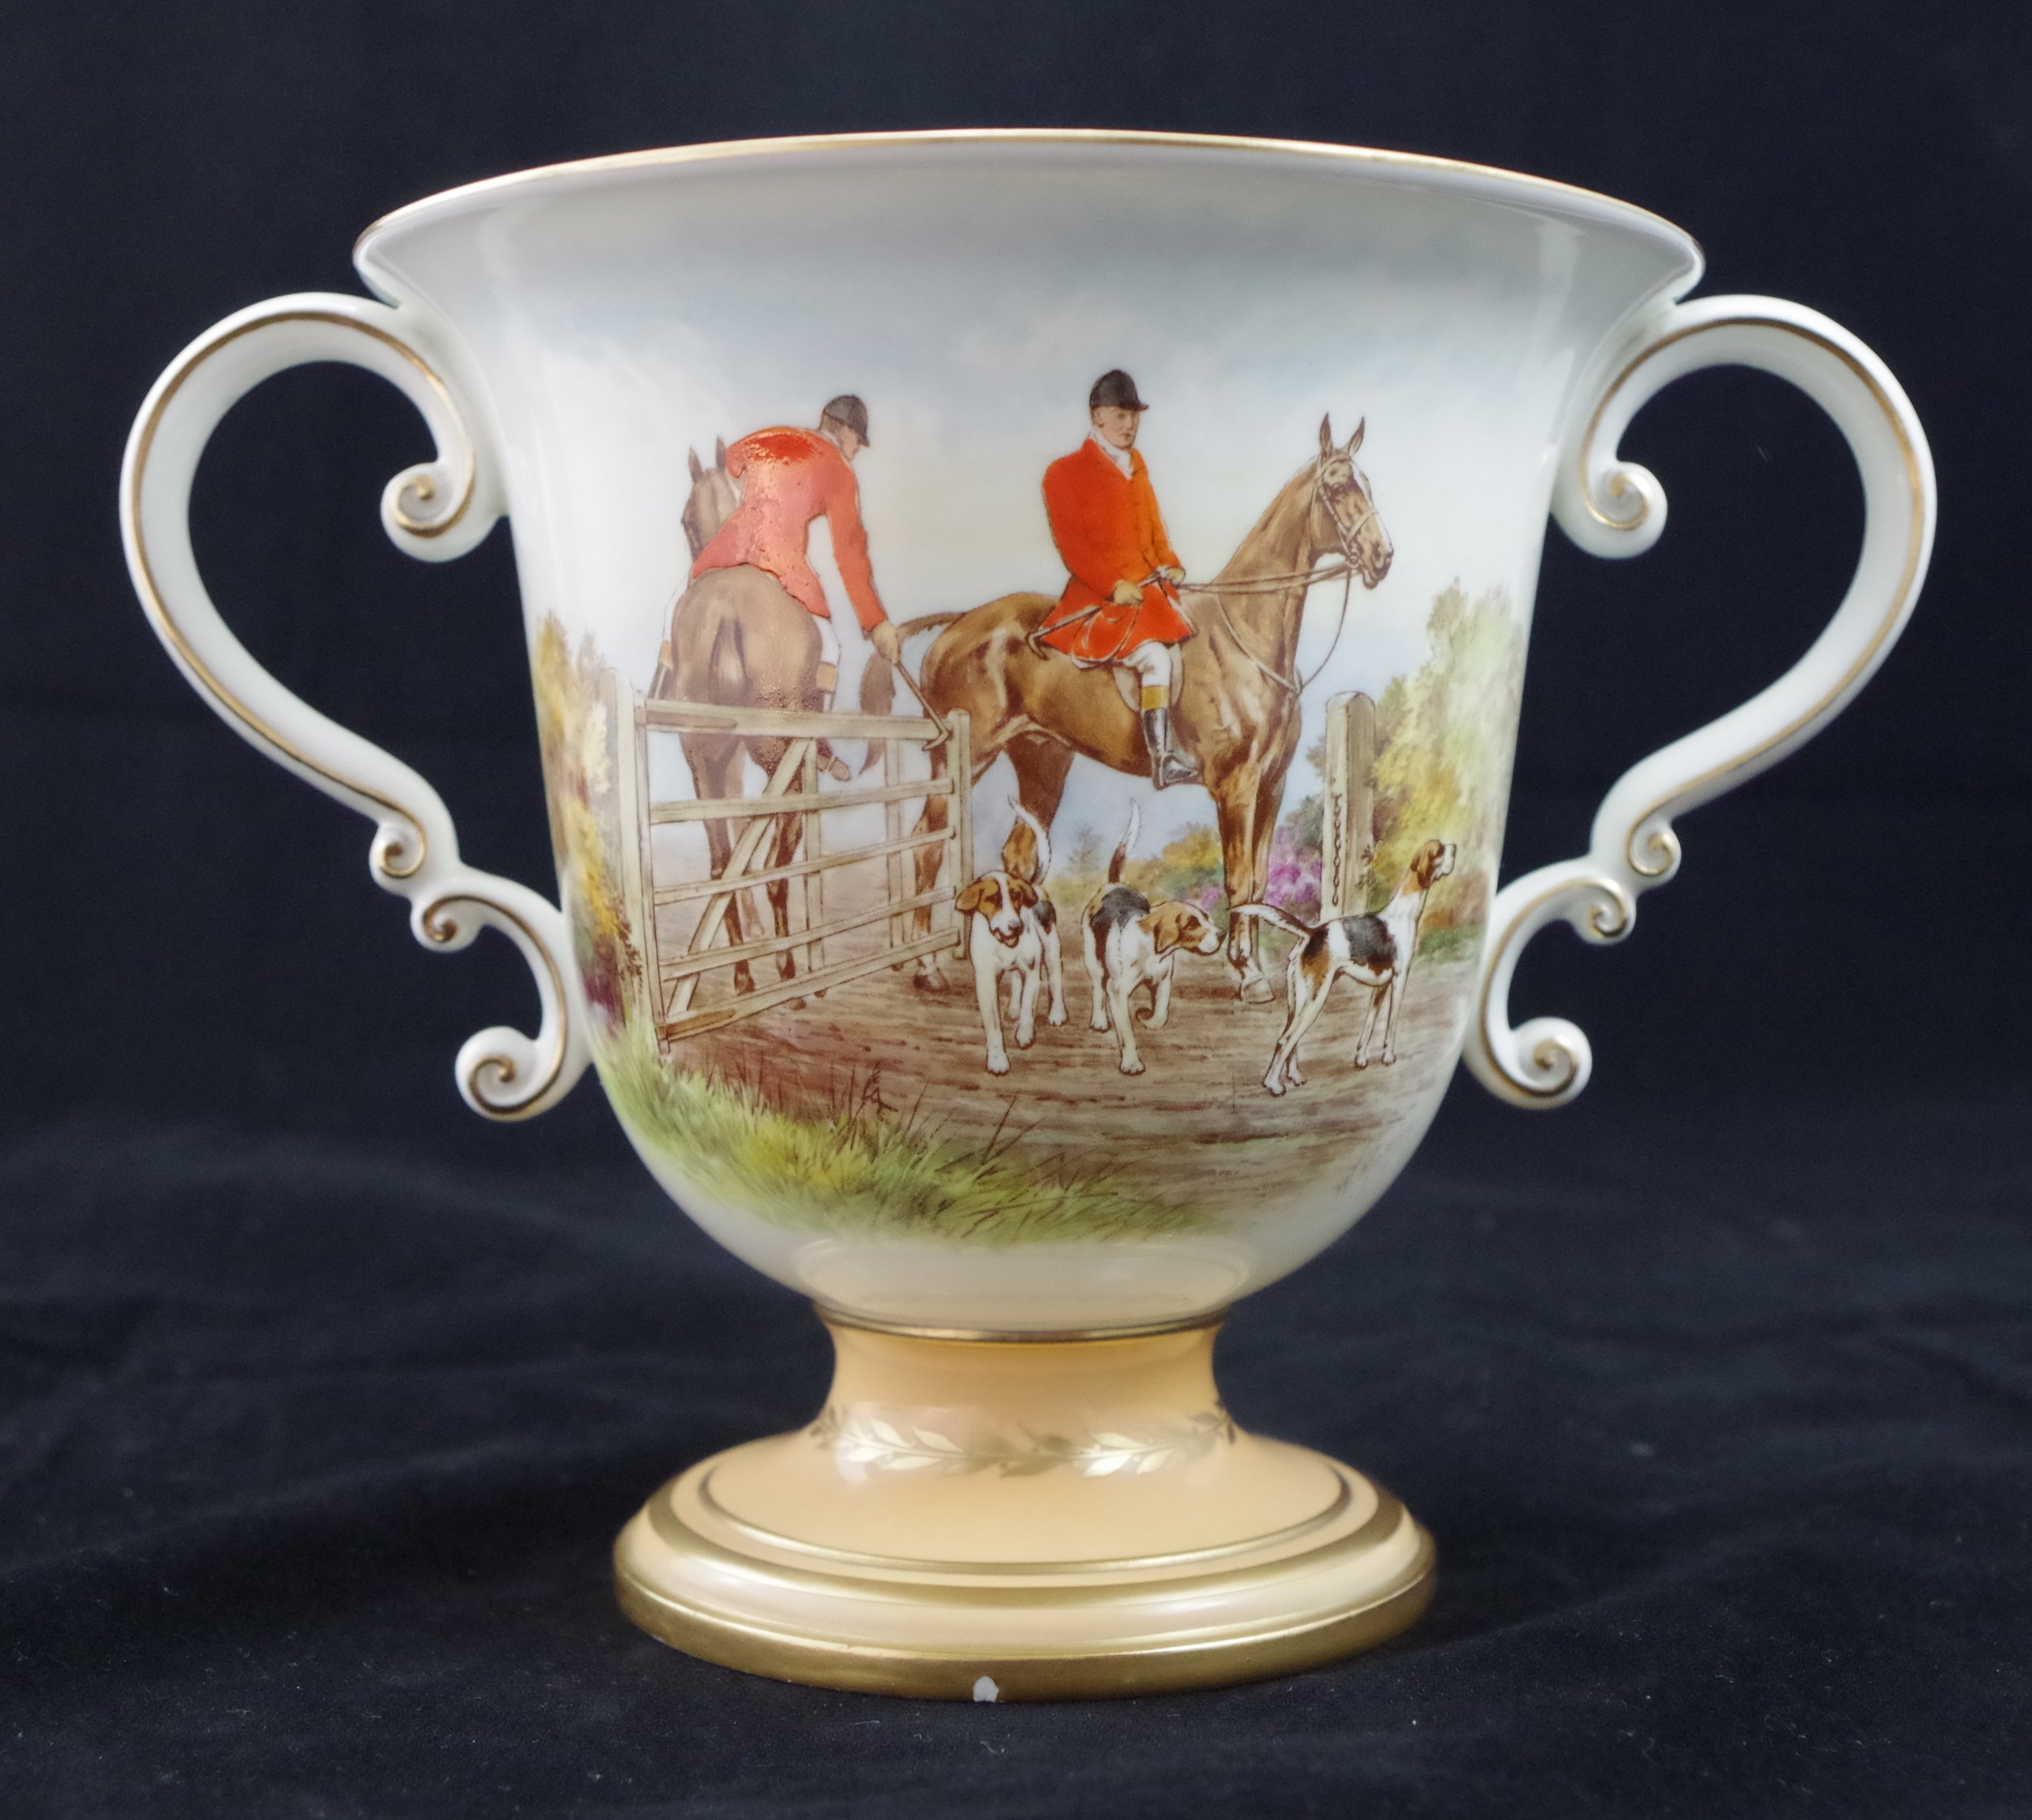 royal-crown-derby-large-trophy-vase-golden-fawn-ground-hunting-scene-mosley-reverse